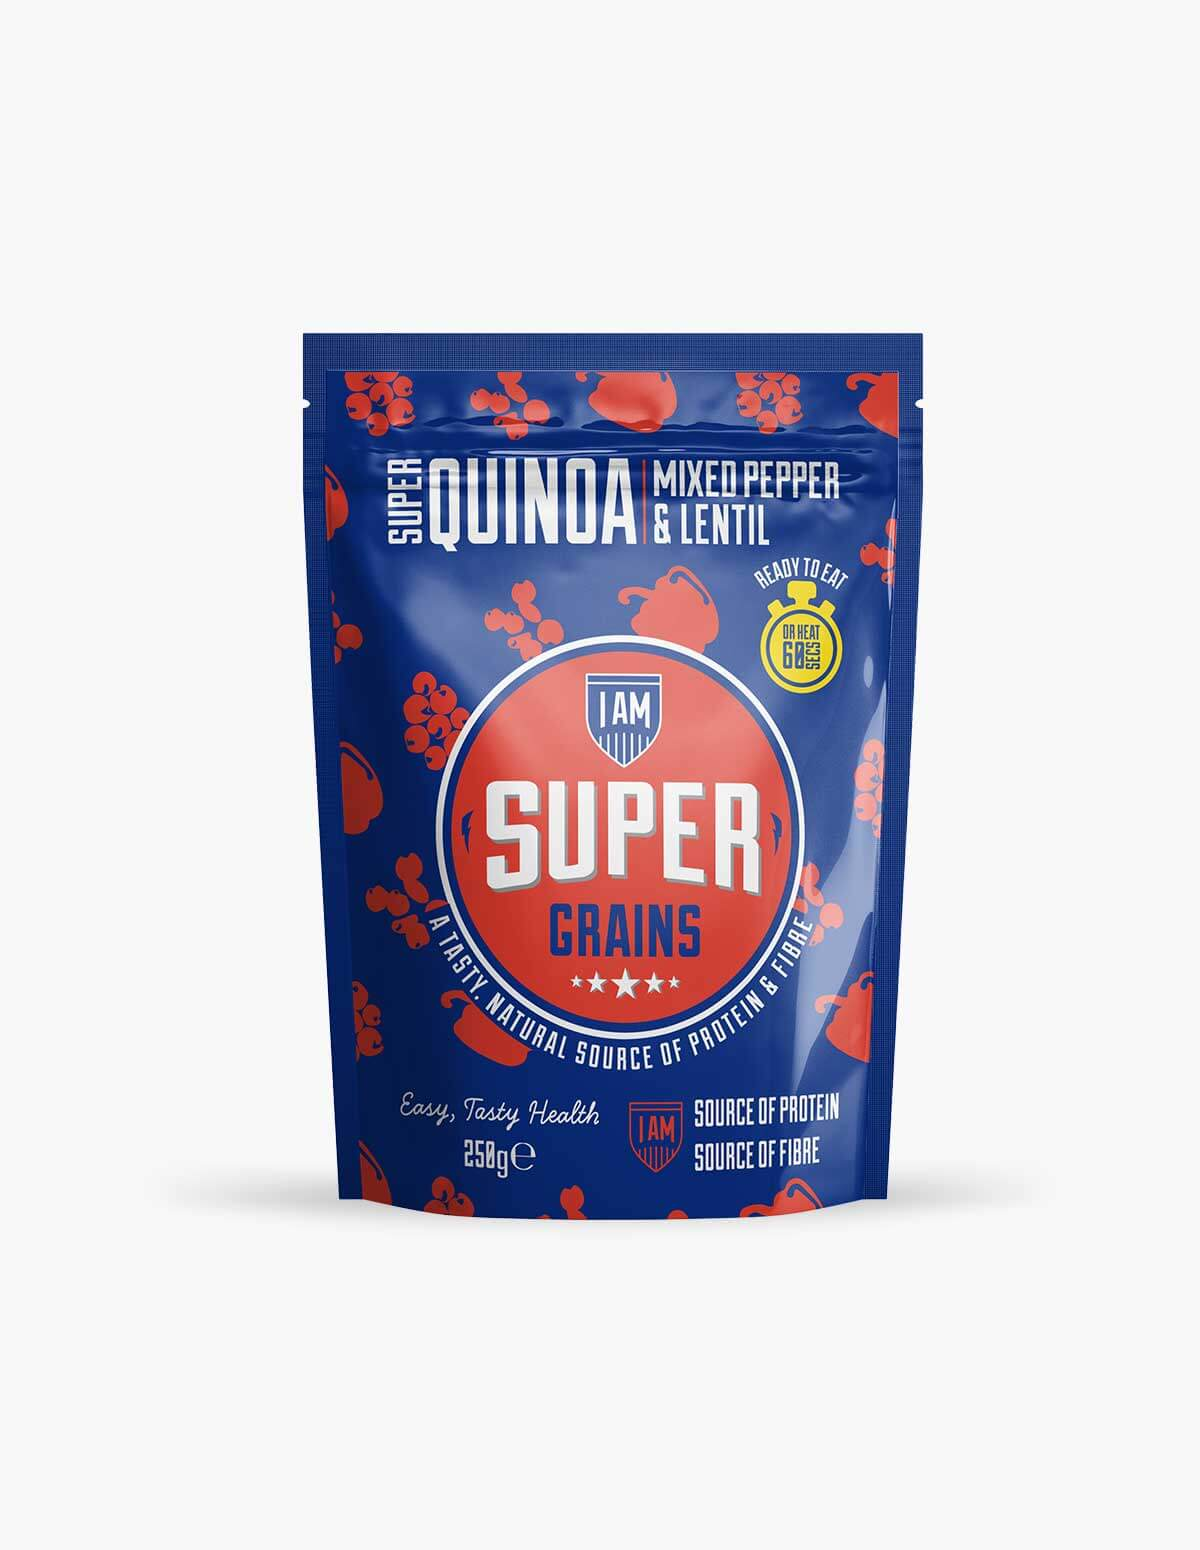 I Am Super Grains Super Quinoa Mixed Pepper & Lentil 250g